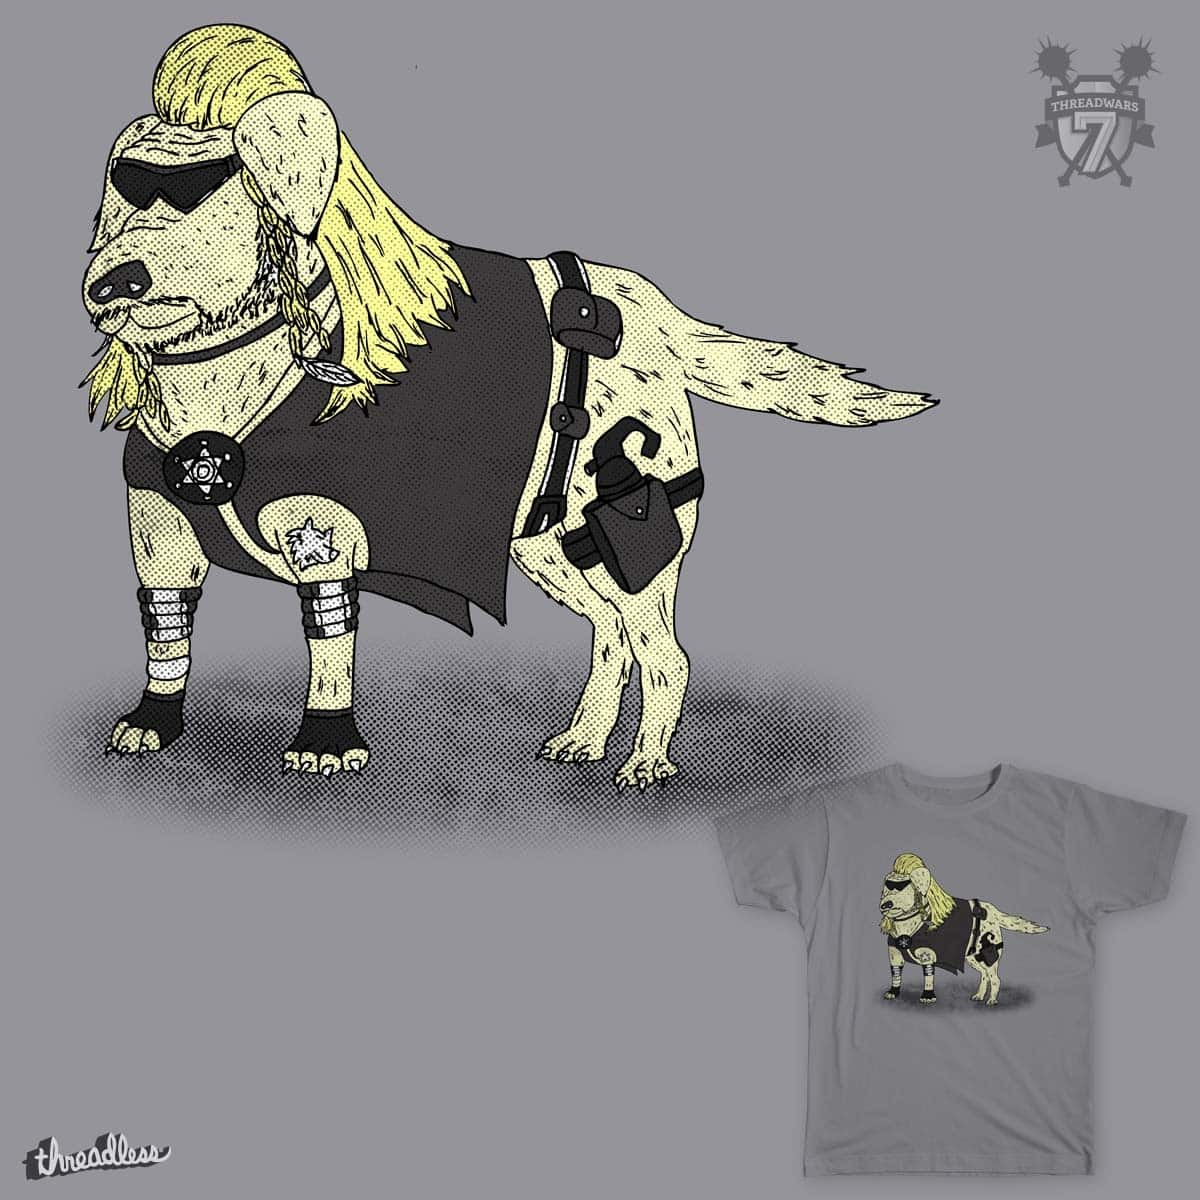 Doggy the Bounty Hunter by ChrisDB on Threadless